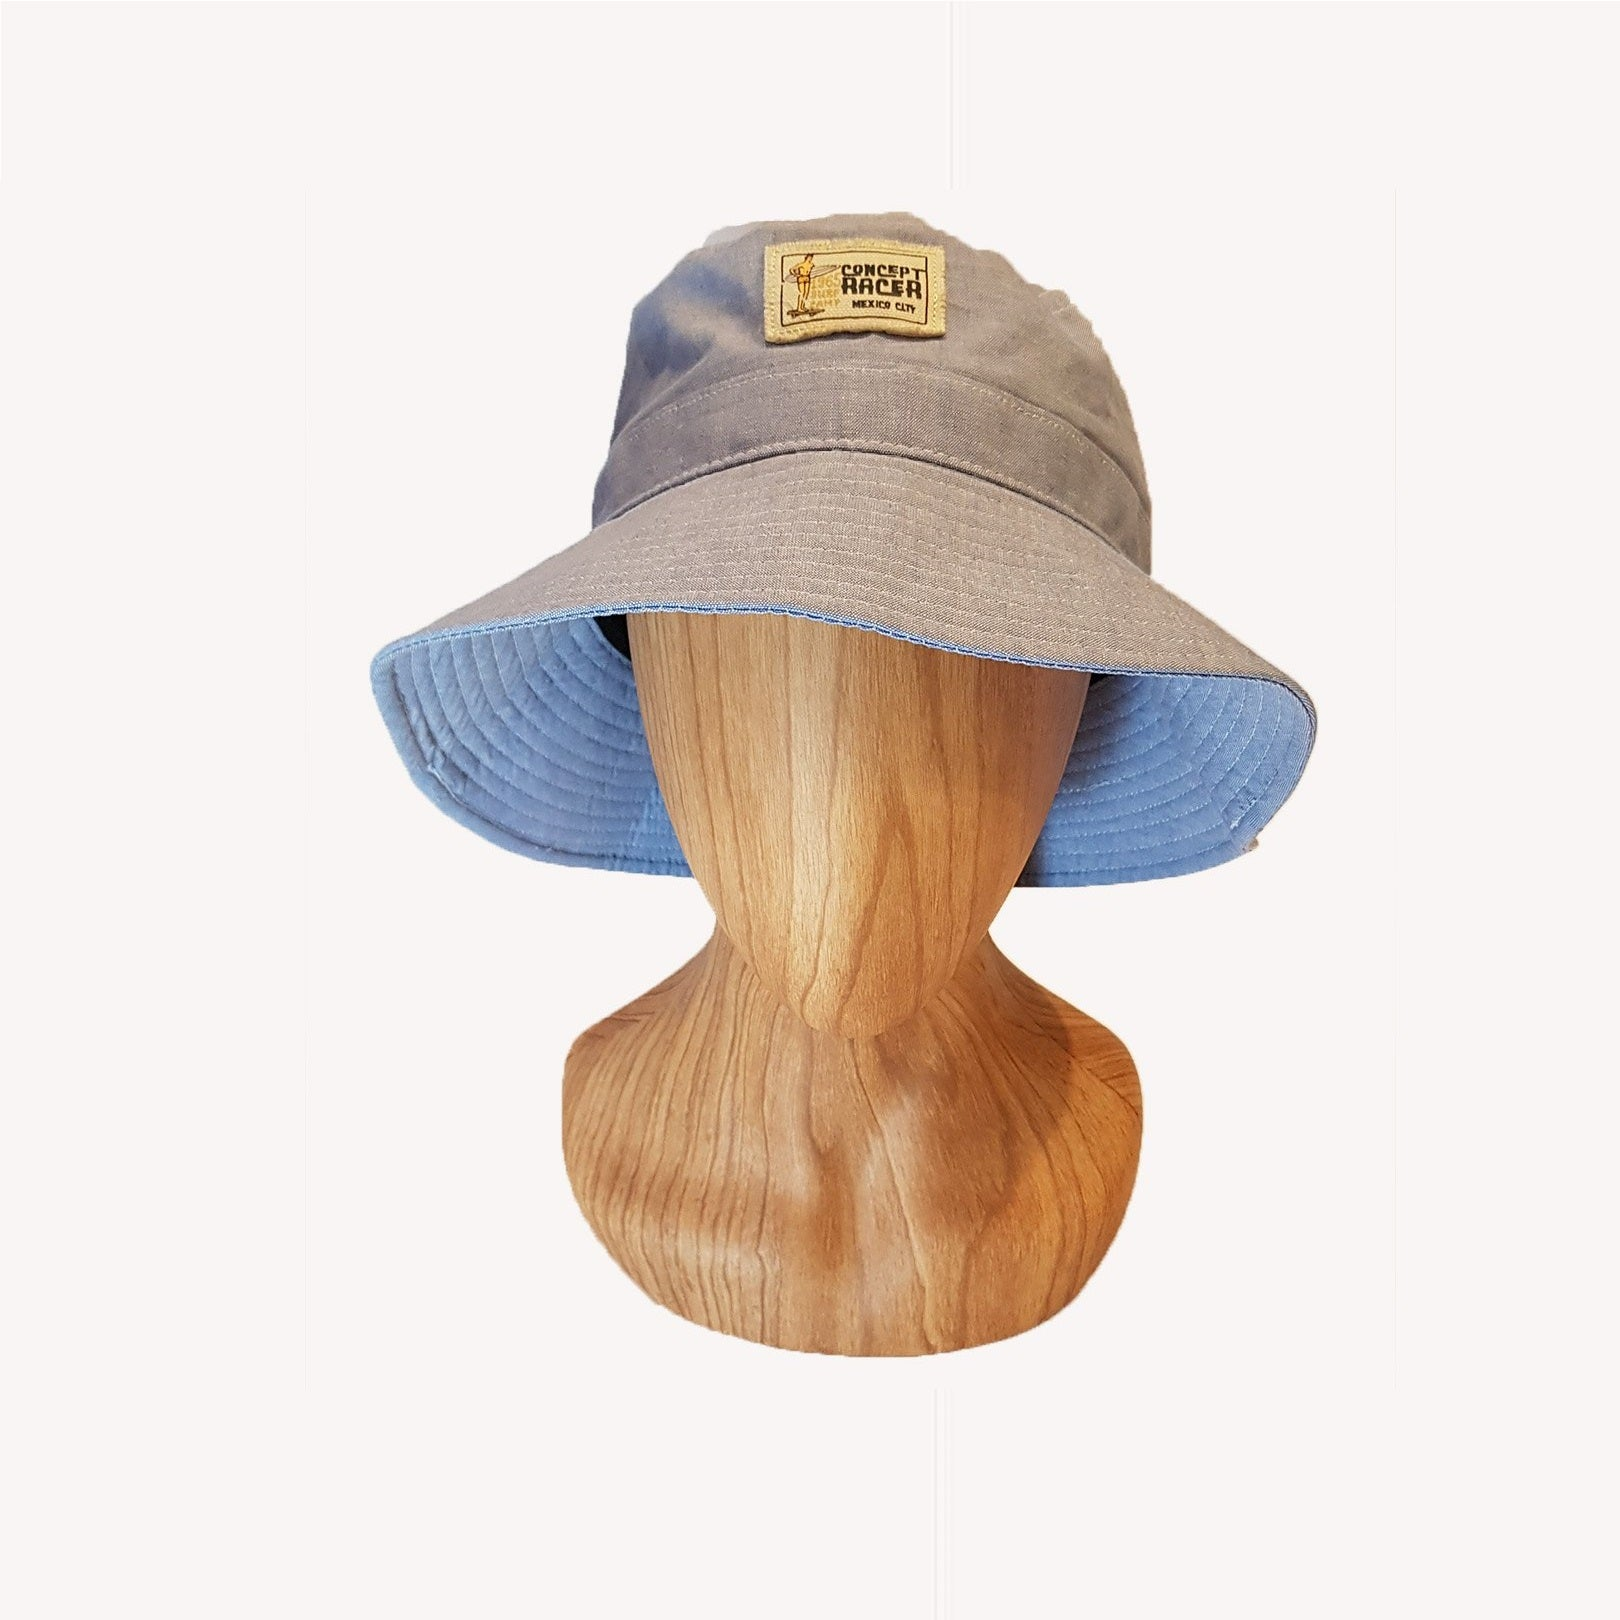 Light Blue canvas Bucket Hat - Concept Racer